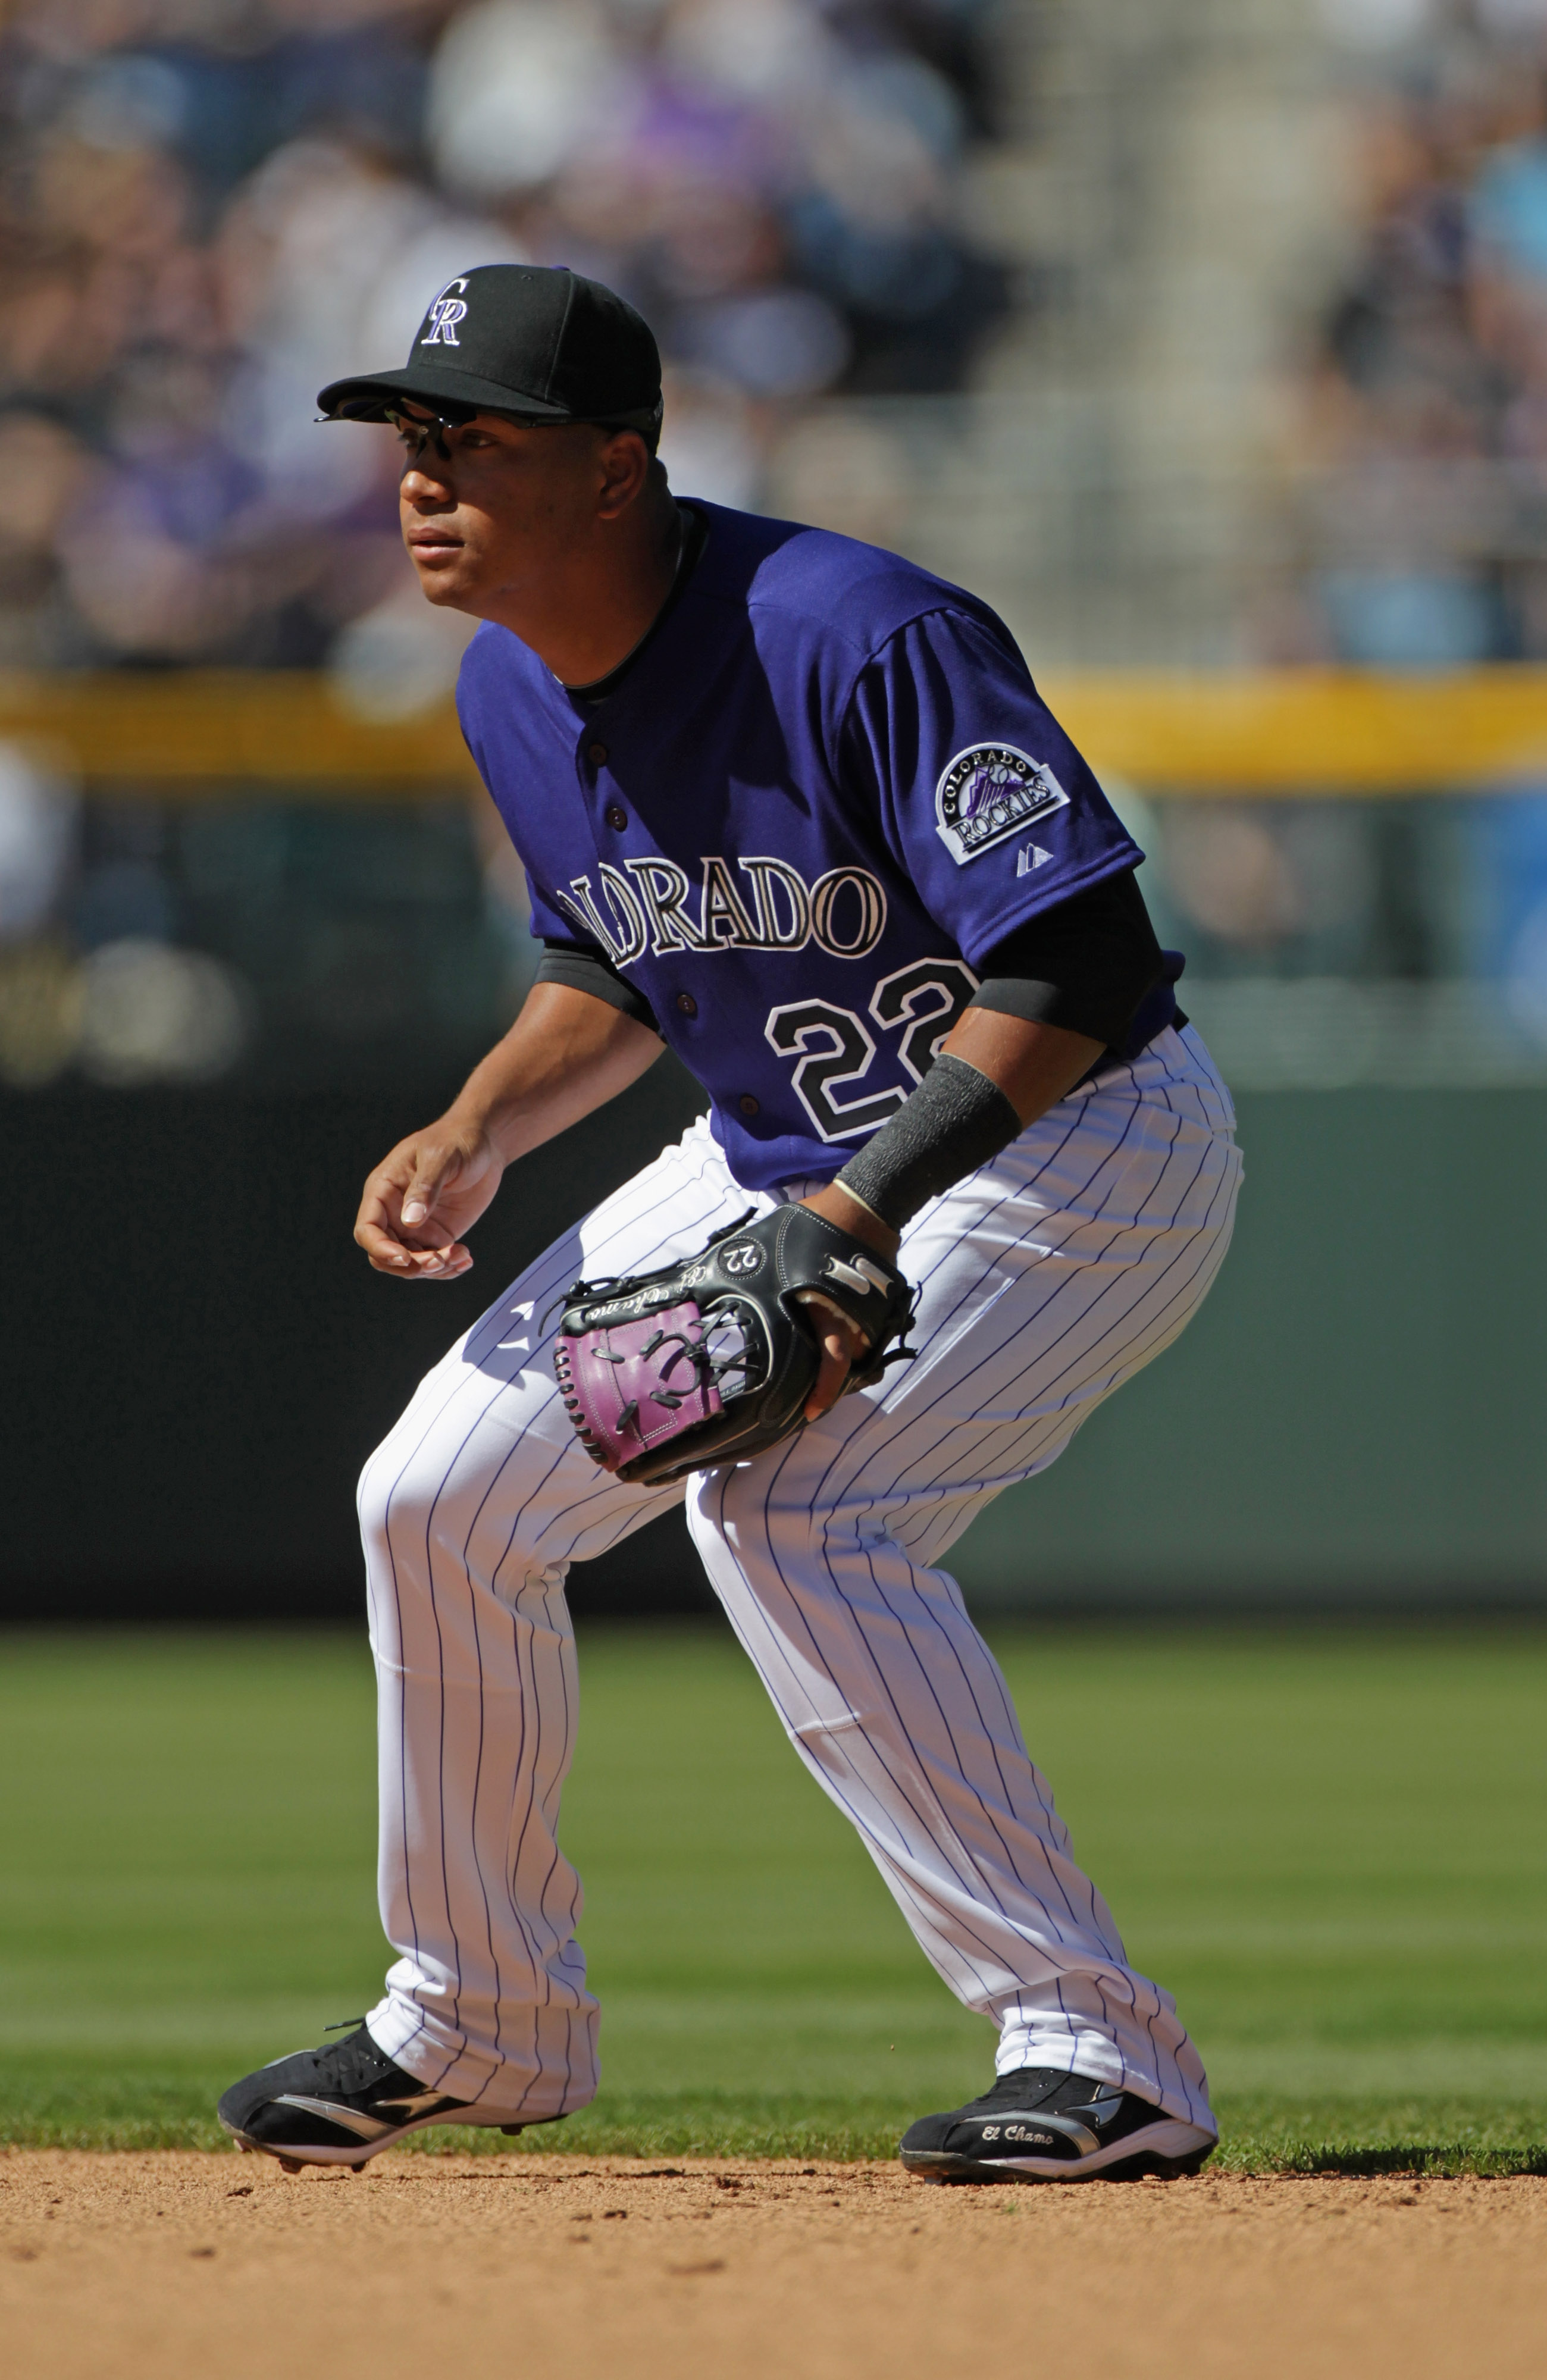 DENVER, CO - APRIL 01:  Second baseman Jose Lopez #22 of the Colorado Rockies plays defense against the Arizona Diamondbacks during Opening Day at Coors Field on April 1, 2011 in Denver, Colorado.  (Photo by Doug Pensinger/Getty Images)